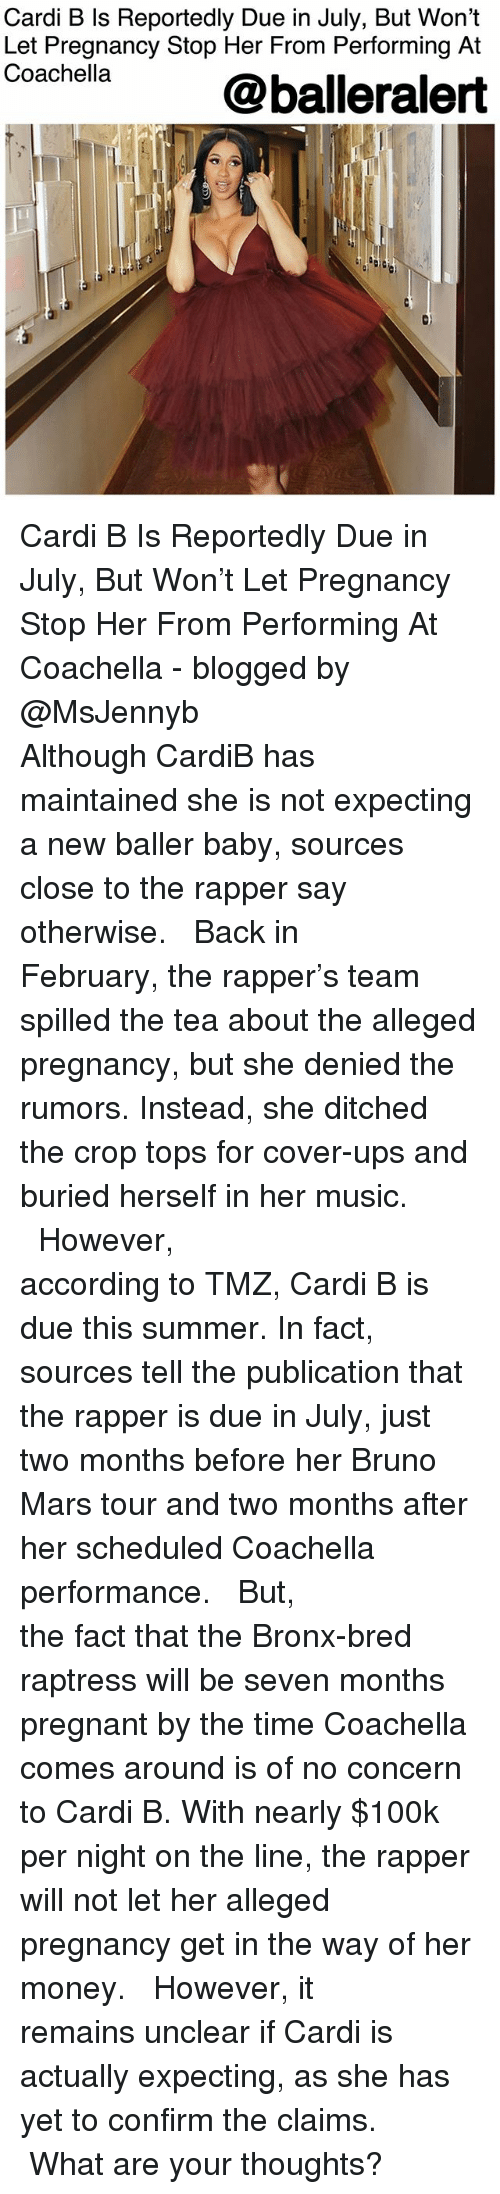 Bruno Mars, Coachella, and Memes: Cardi B Is Reportedly Due in July, But Won't  Let Pregnancy Stop Her From Performing At  Coachella  @balleralert  0) Cardi B Is Reportedly Due in July, But Won't Let Pregnancy Stop Her From Performing At Coachella - blogged by @MsJennyb ⠀⠀⠀⠀⠀⠀⠀⠀⠀ ⠀⠀⠀⠀⠀⠀⠀⠀⠀ Although CardiB has maintained she is not expecting a new baller baby, sources close to the rapper say otherwise. ⠀⠀⠀⠀⠀⠀⠀⠀⠀ ⠀⠀⠀⠀⠀⠀⠀⠀⠀ Back in February, the rapper's team spilled the tea about the alleged pregnancy, but she denied the rumors. Instead, she ditched the crop tops for cover-ups and buried herself in her music. ⠀⠀⠀⠀⠀⠀⠀⠀⠀ ⠀⠀⠀⠀⠀⠀⠀⠀⠀ However, according to TMZ, Cardi B is due this summer. In fact, sources tell the publication that the rapper is due in July, just two months before her Bruno Mars tour and two months after her scheduled Coachella performance. ⠀⠀⠀⠀⠀⠀⠀⠀⠀ ⠀⠀⠀⠀⠀⠀⠀⠀⠀ But, the fact that the Bronx-bred raptress will be seven months pregnant by the time Coachella comes around is of no concern to Cardi B. With nearly $100k per night on the line, the rapper will not let her alleged pregnancy get in the way of her money. ⠀⠀⠀⠀⠀⠀⠀⠀⠀ ⠀⠀⠀⠀⠀⠀⠀⠀⠀ However, it remains unclear if Cardi is actually expecting, as she has yet to confirm the claims. ⠀⠀⠀⠀⠀⠀⠀⠀⠀ ⠀⠀⠀⠀⠀⠀⠀⠀⠀ What are your thoughts?